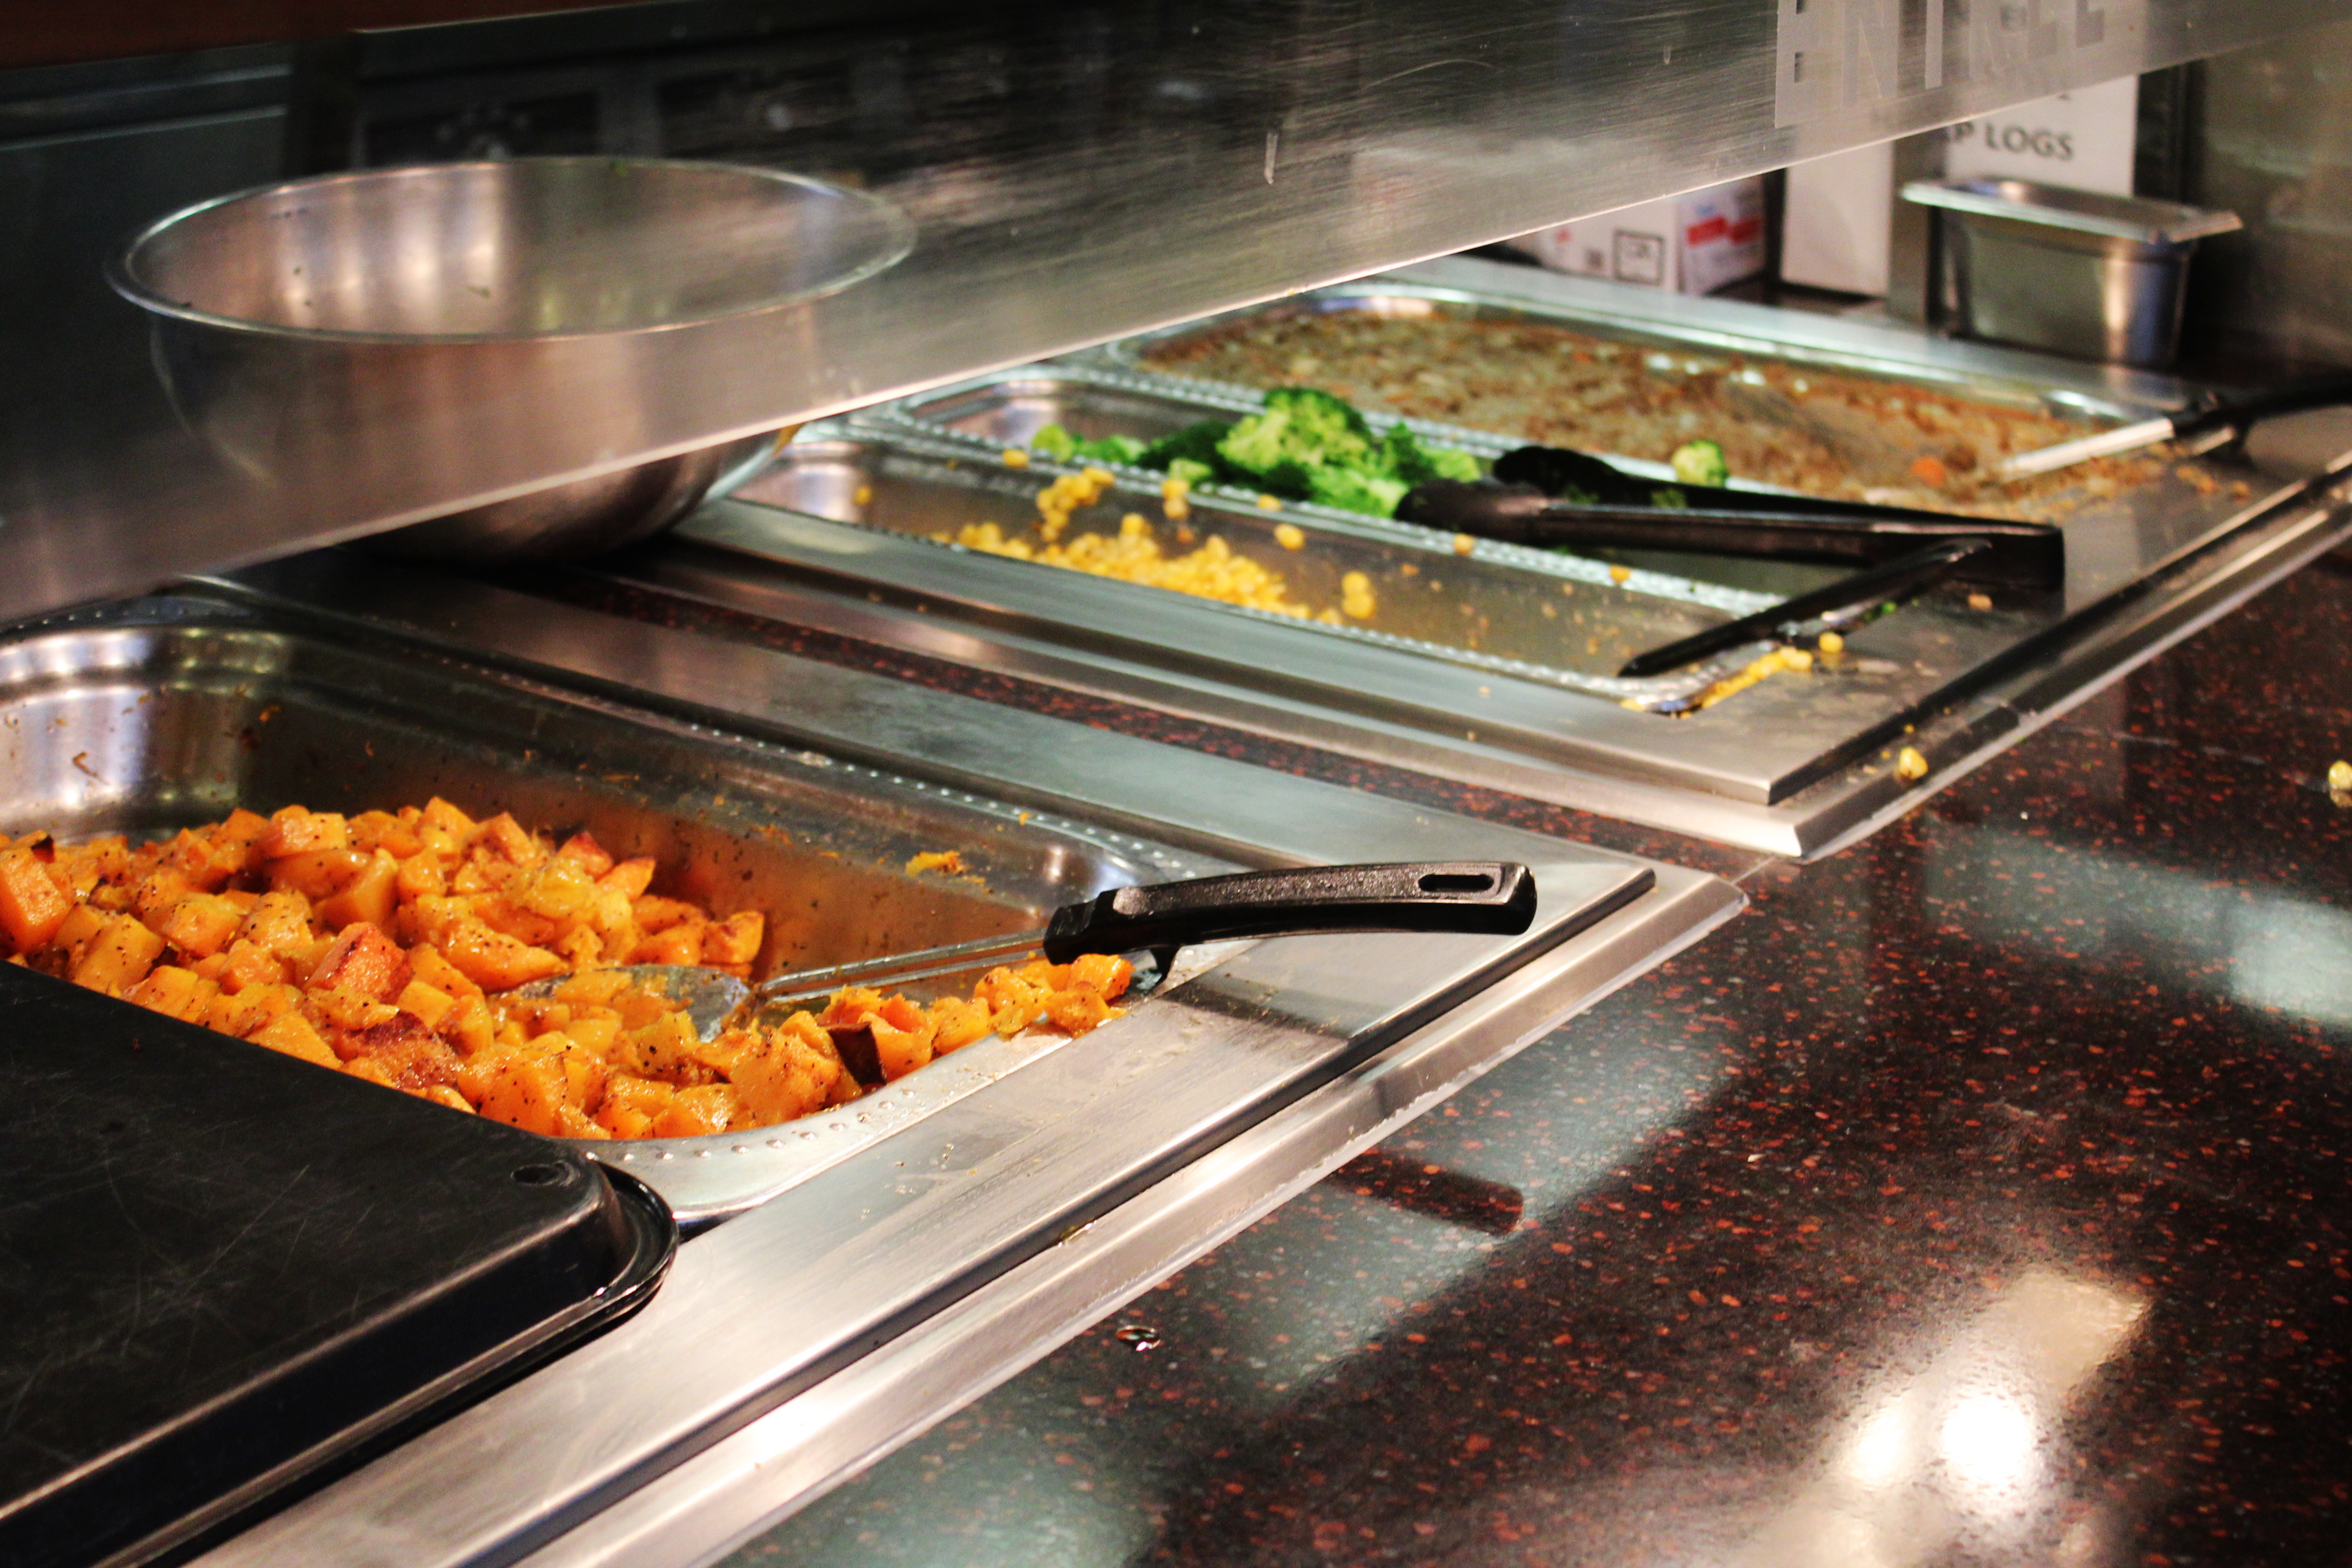 Attractive Bates, Bae Pao Lu Chow And Pomeroy Dining Halls Will Serve Several New  International Dishes This Week.